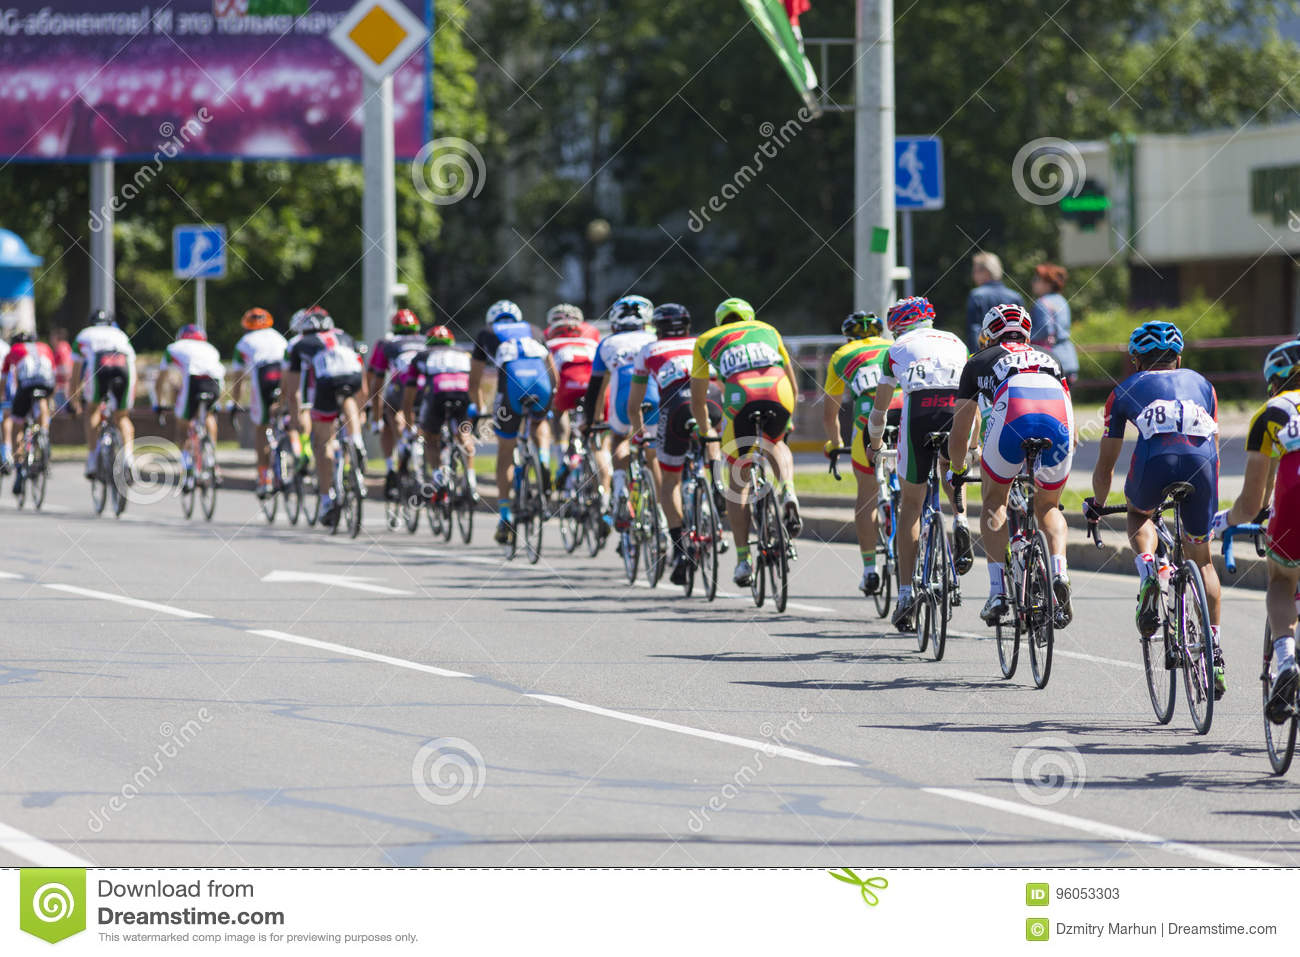 e07a8c161 Group of Youth Road Cyclists in Professional Peloton During International Road  Cycling Competition Grand Prix Minsk